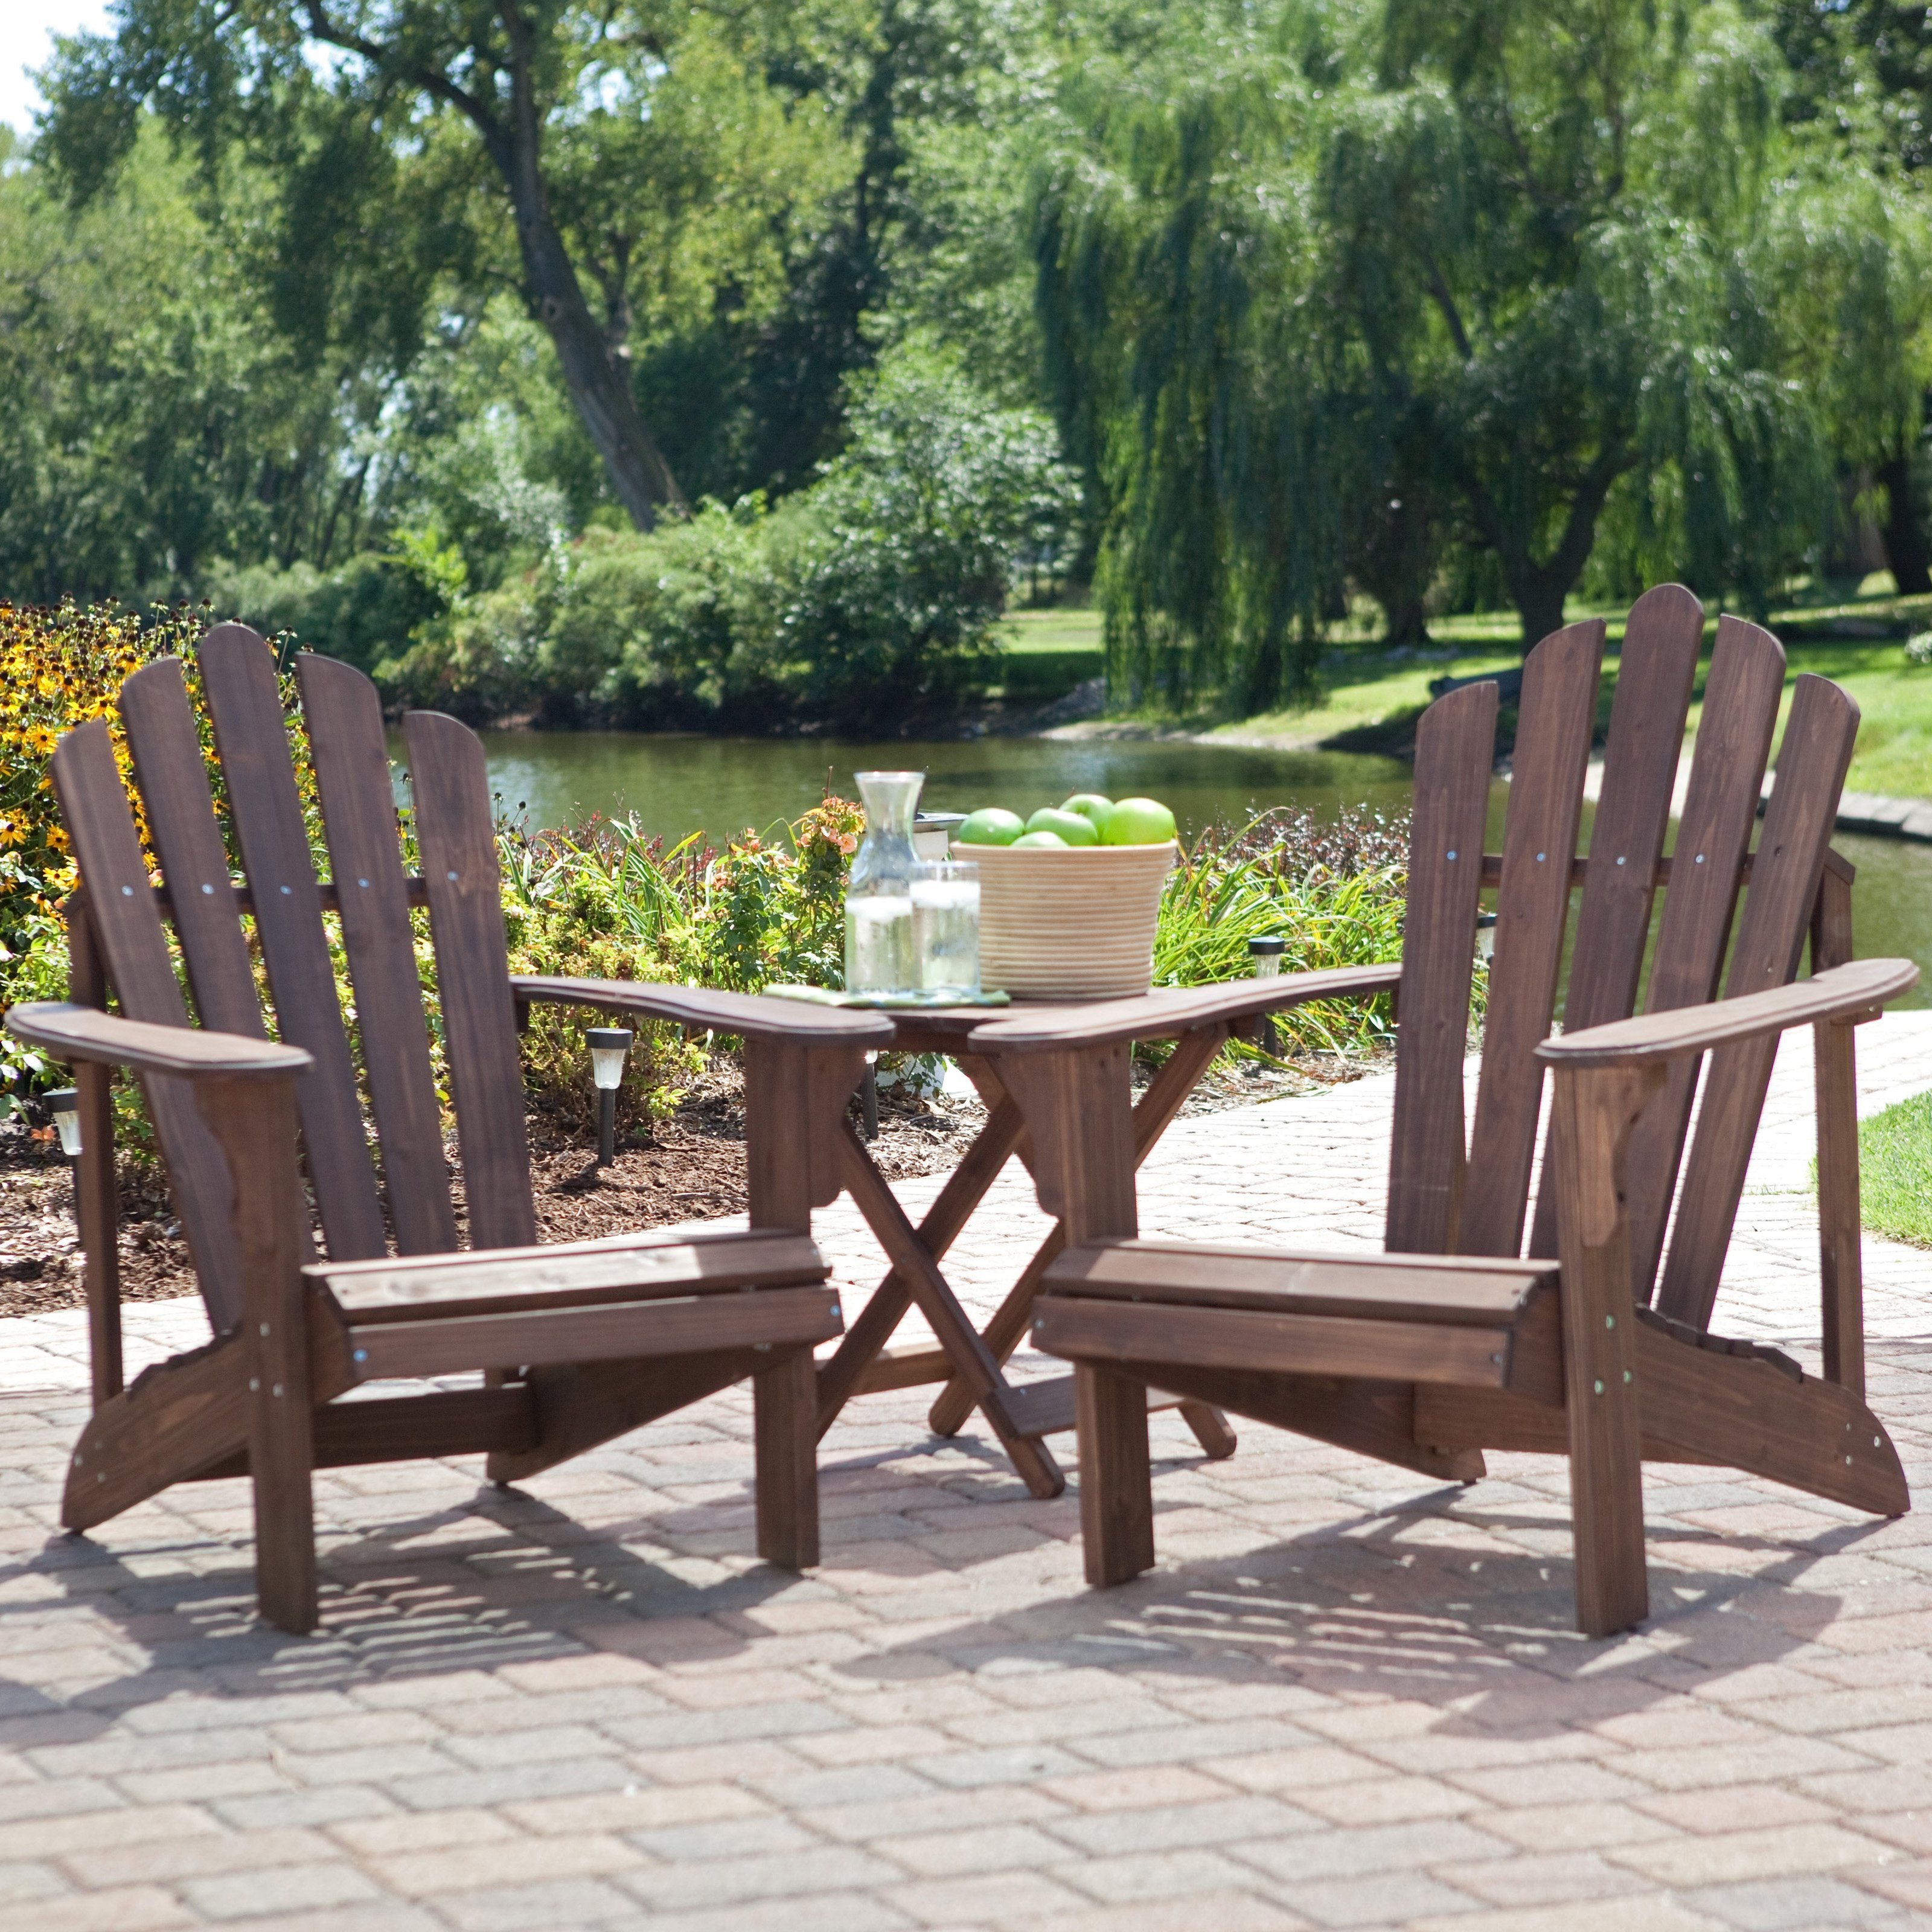 Have To Have It Coral Coast Adirondack Chair Set With